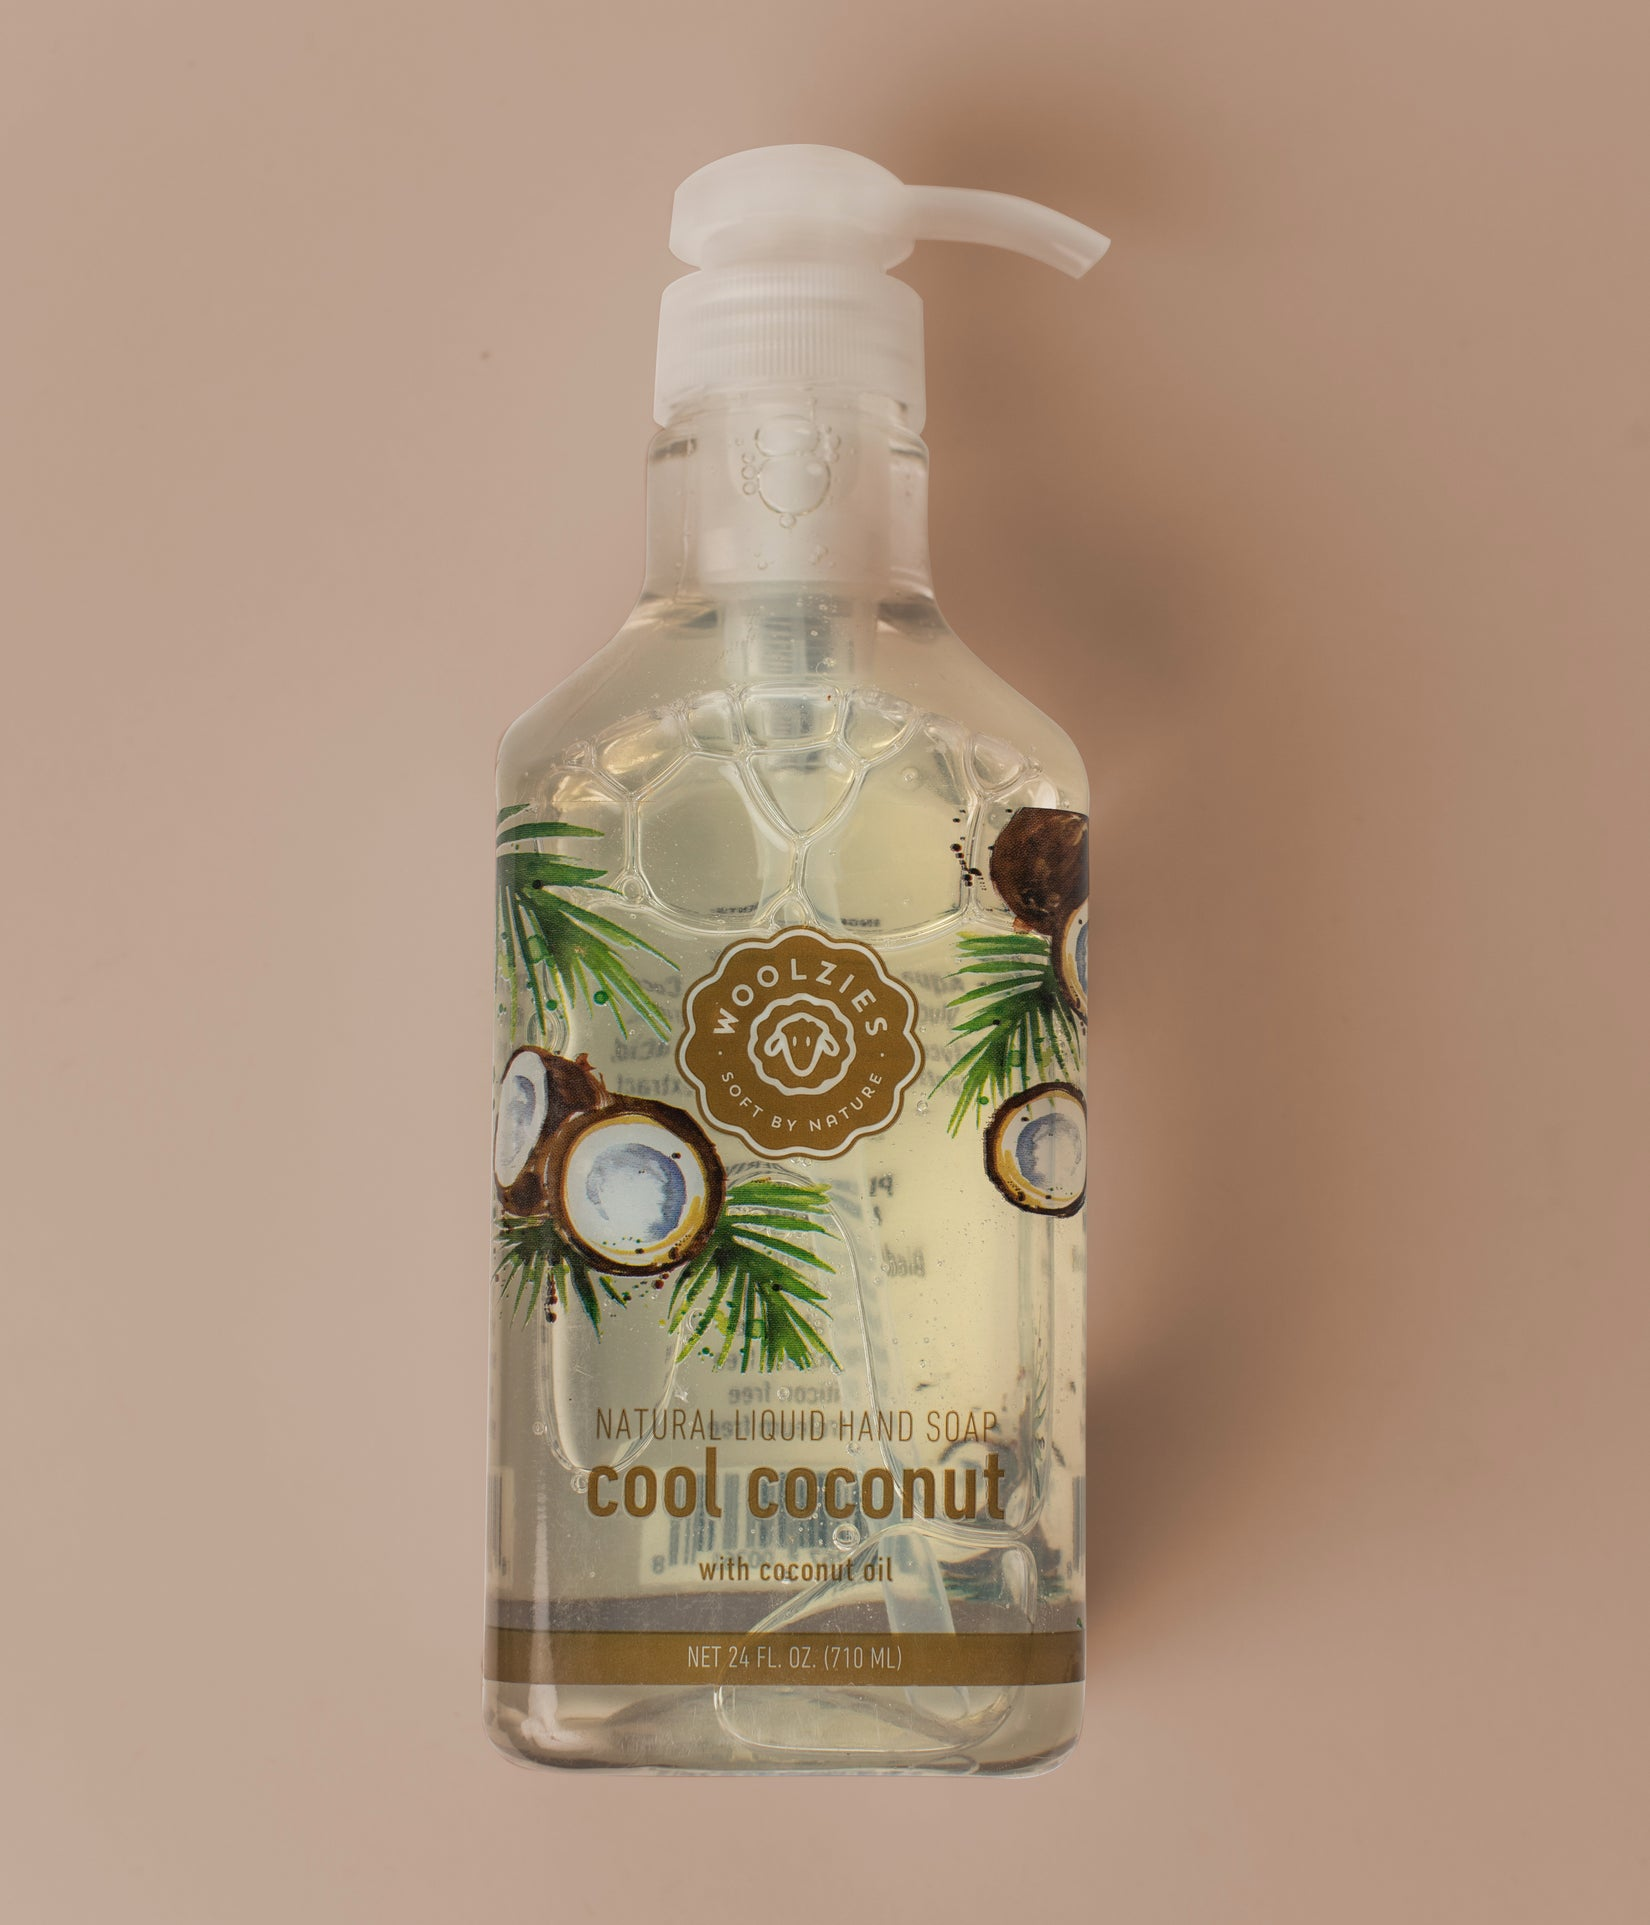 Cool Coconut Liquid Hand Soap